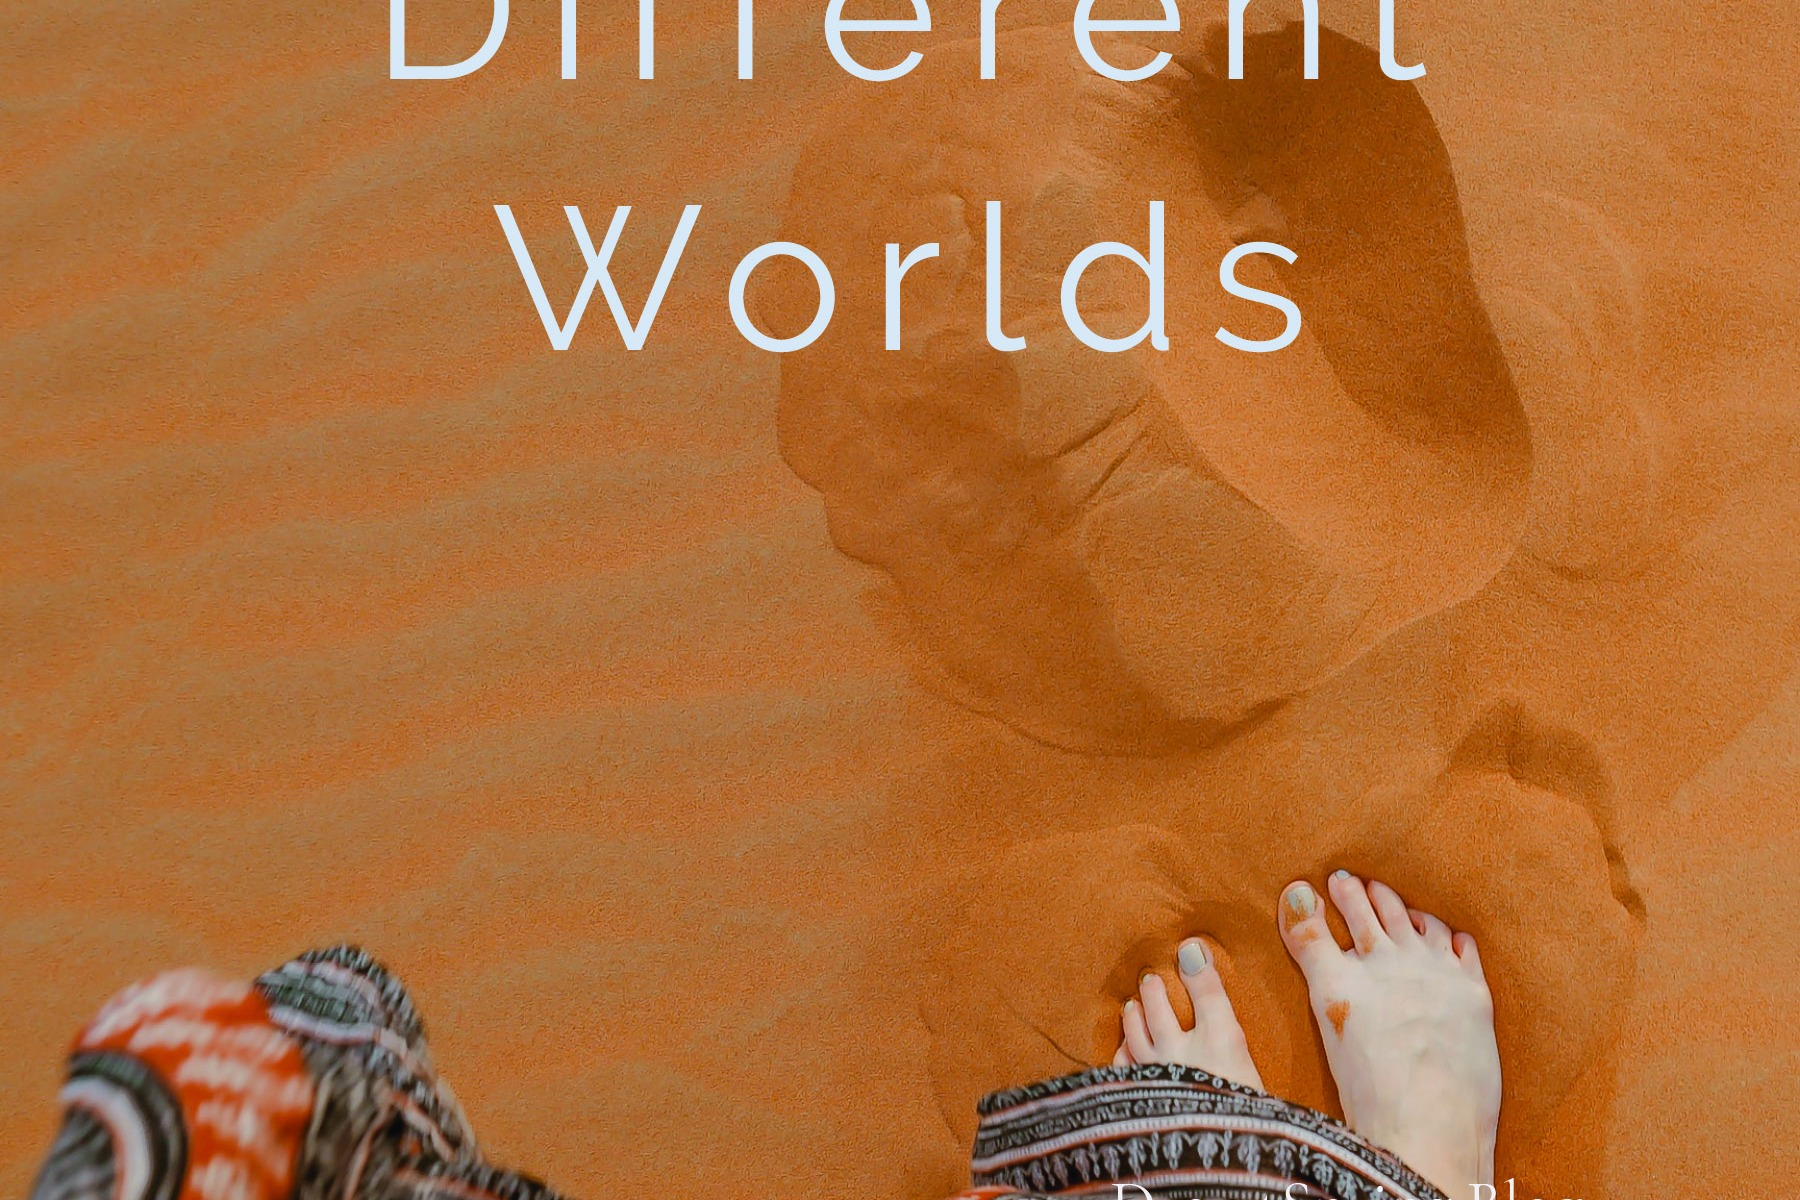 Different Worlds is a blog post from Janet Lenz from Desertsprings blog